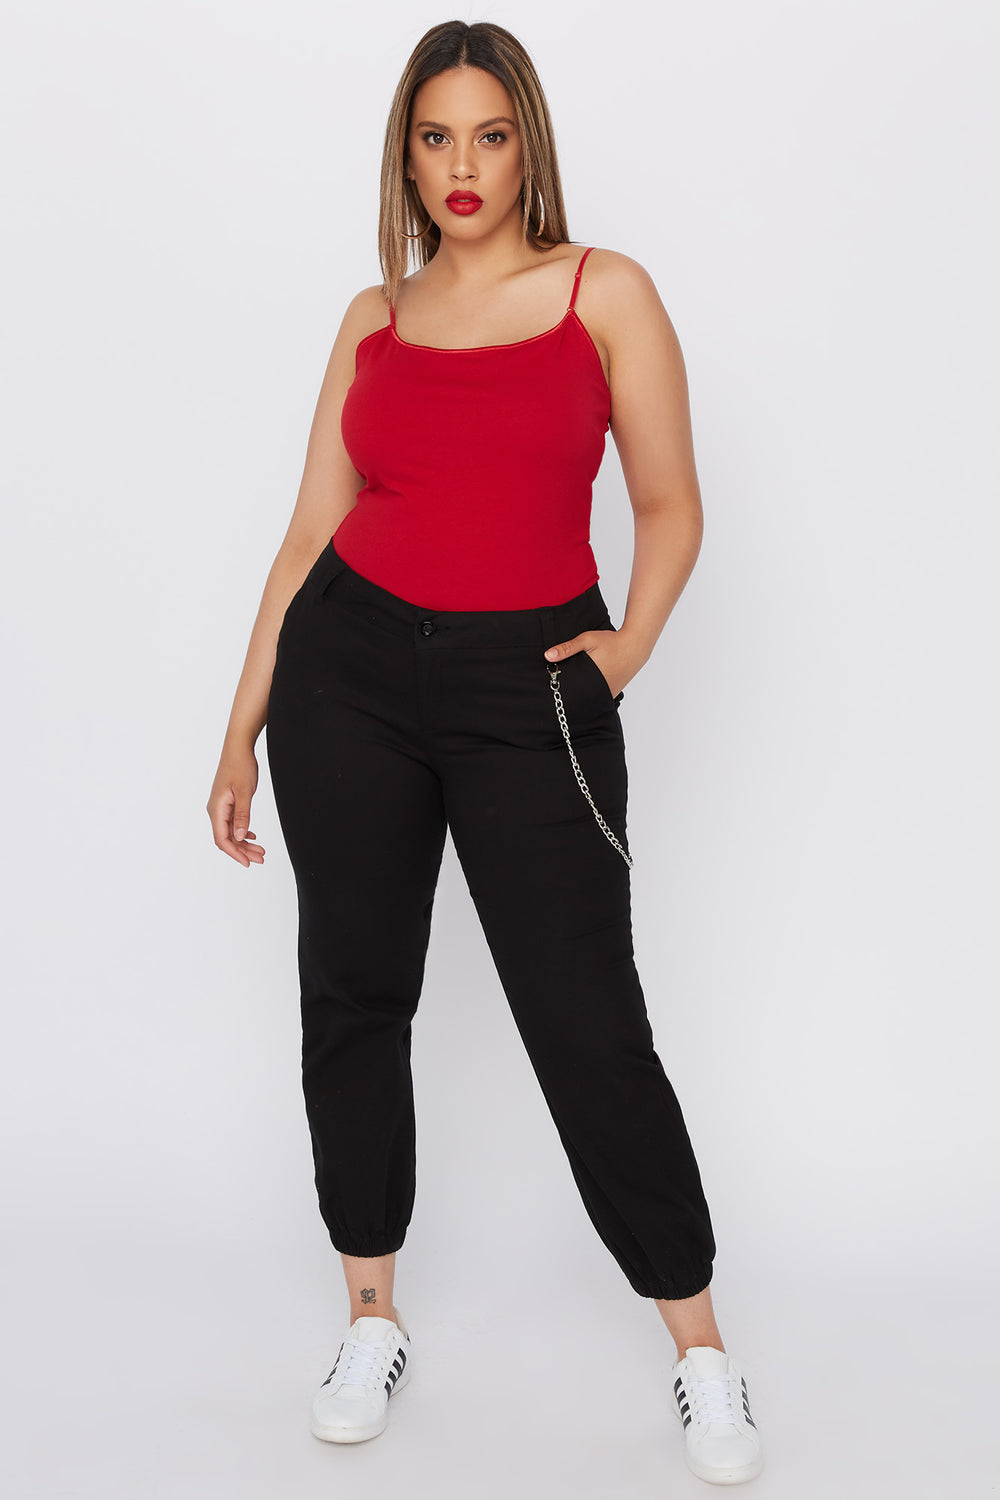 Plus Size Bra Camisole Red